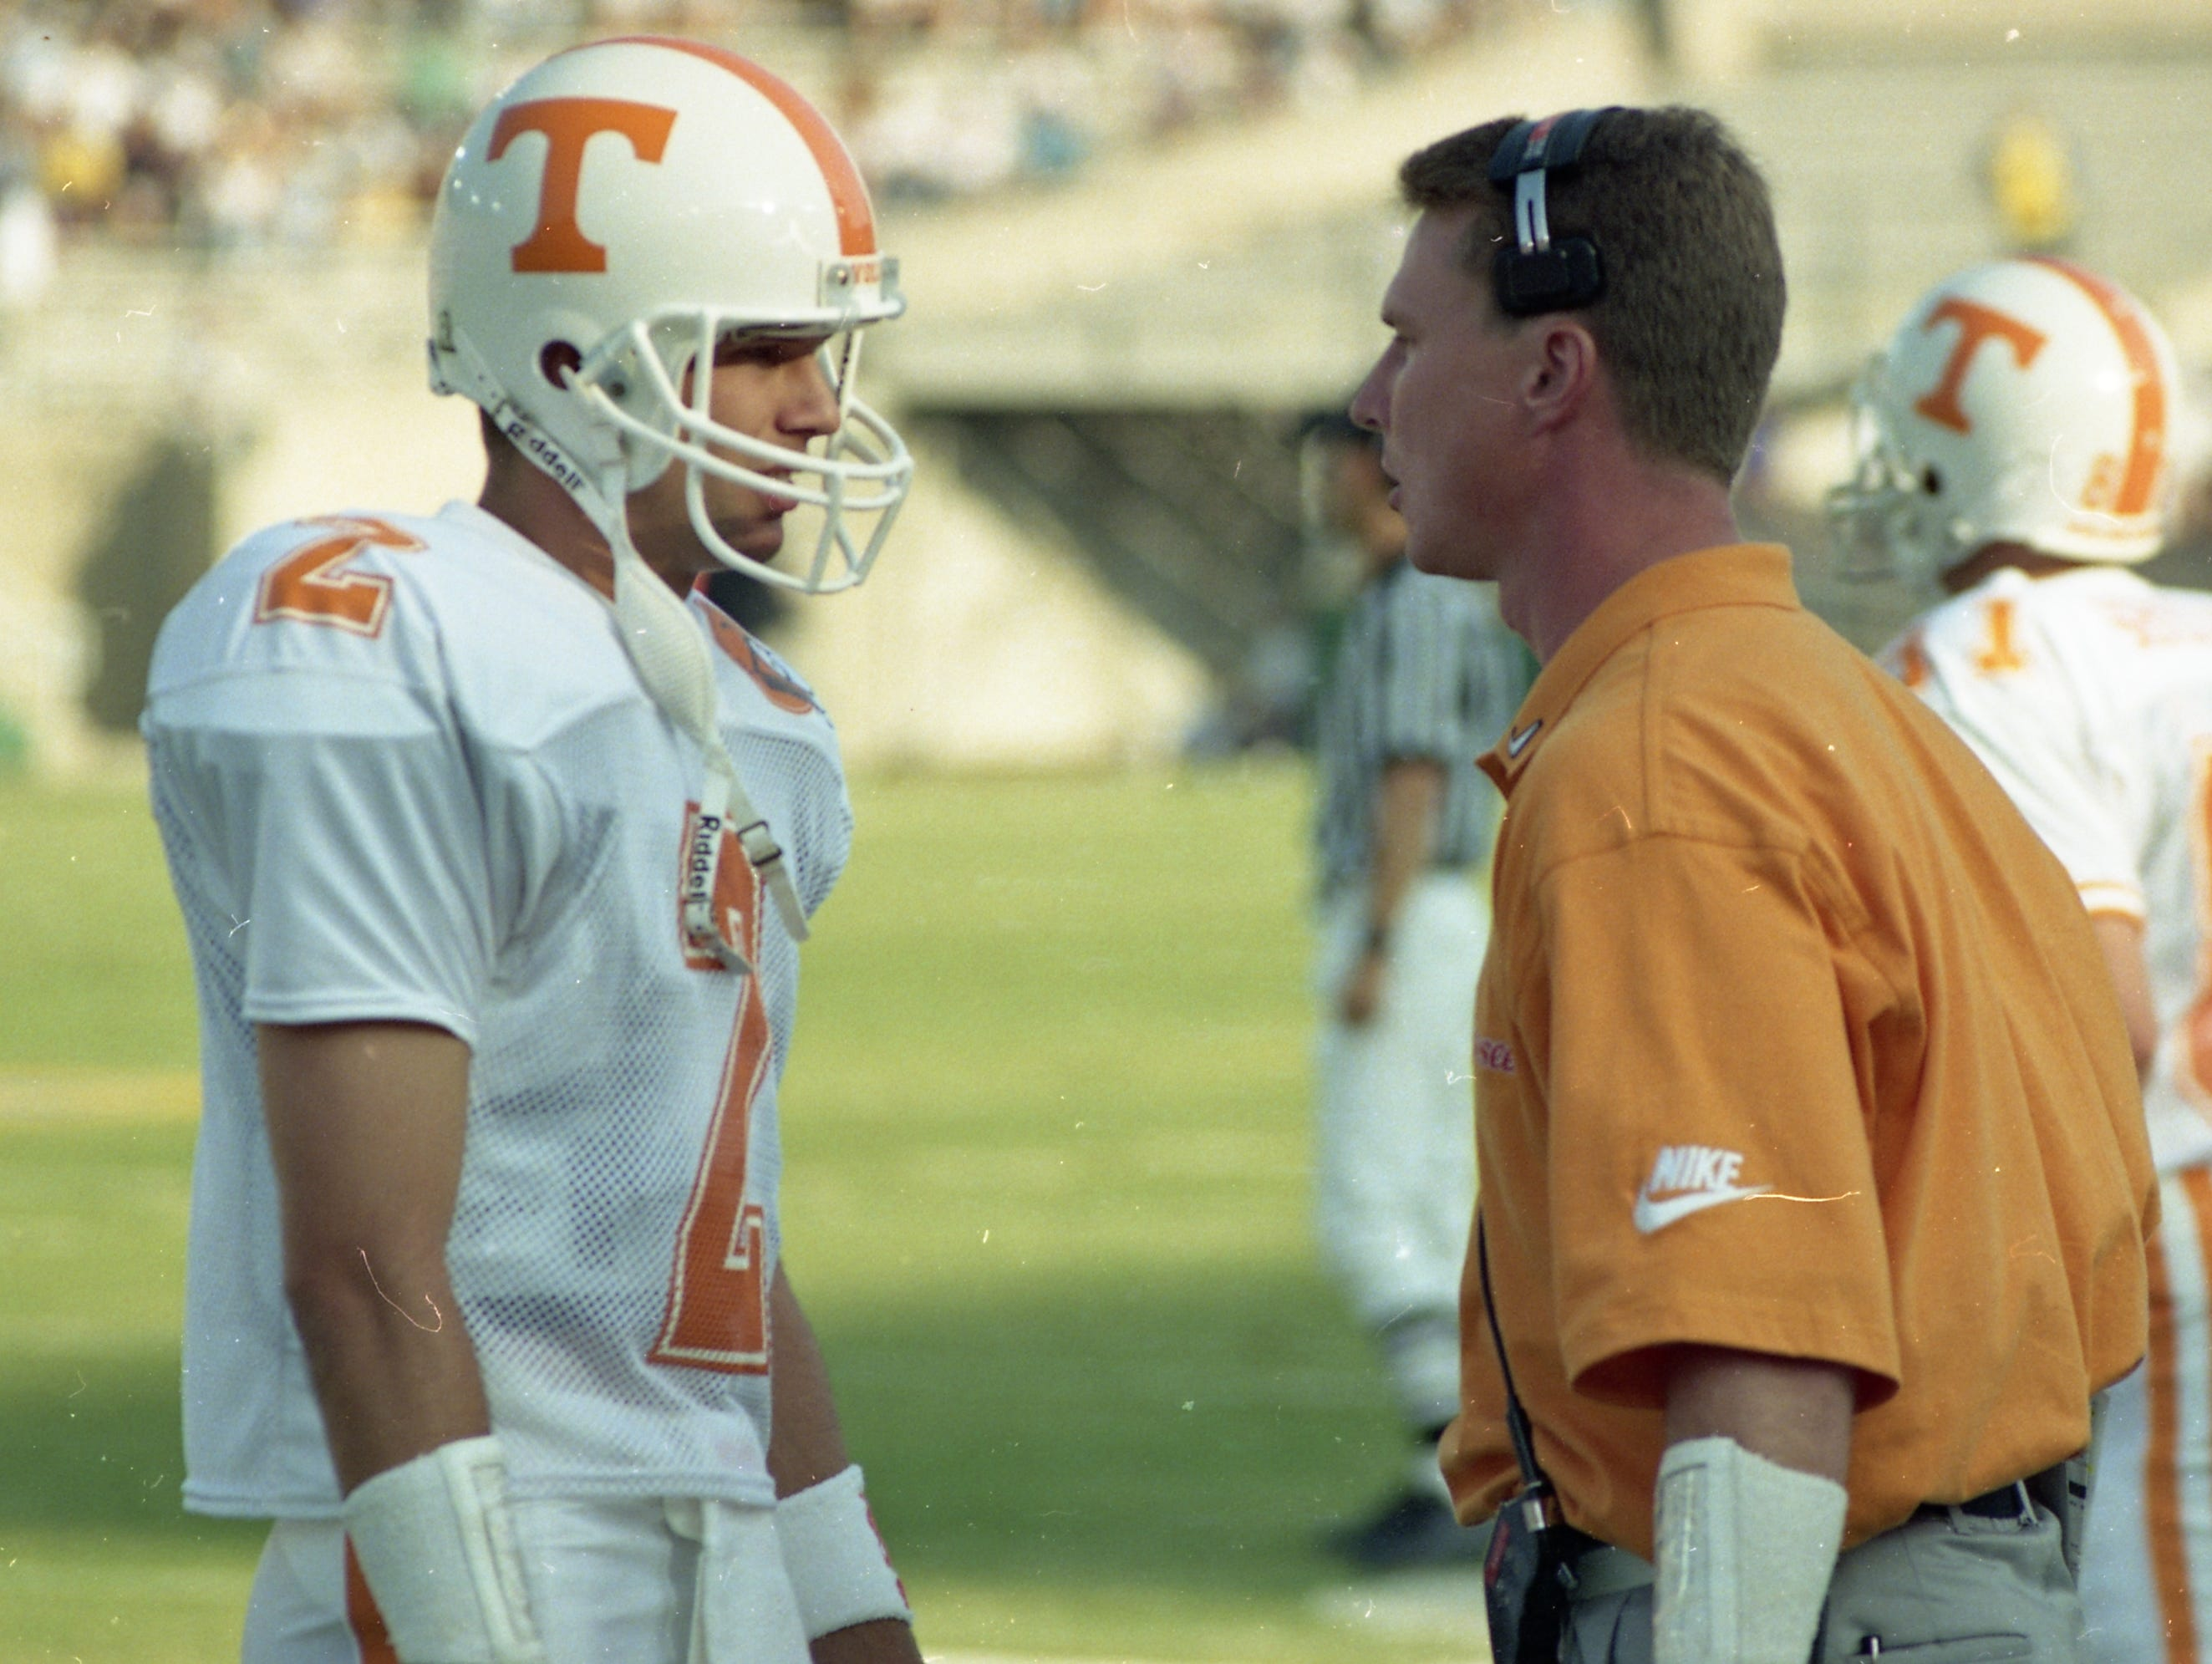 Todd Helton gets instructions from the quarterback coach before going on the field to replace injured Jerry Colquitt on September 4, 1994.